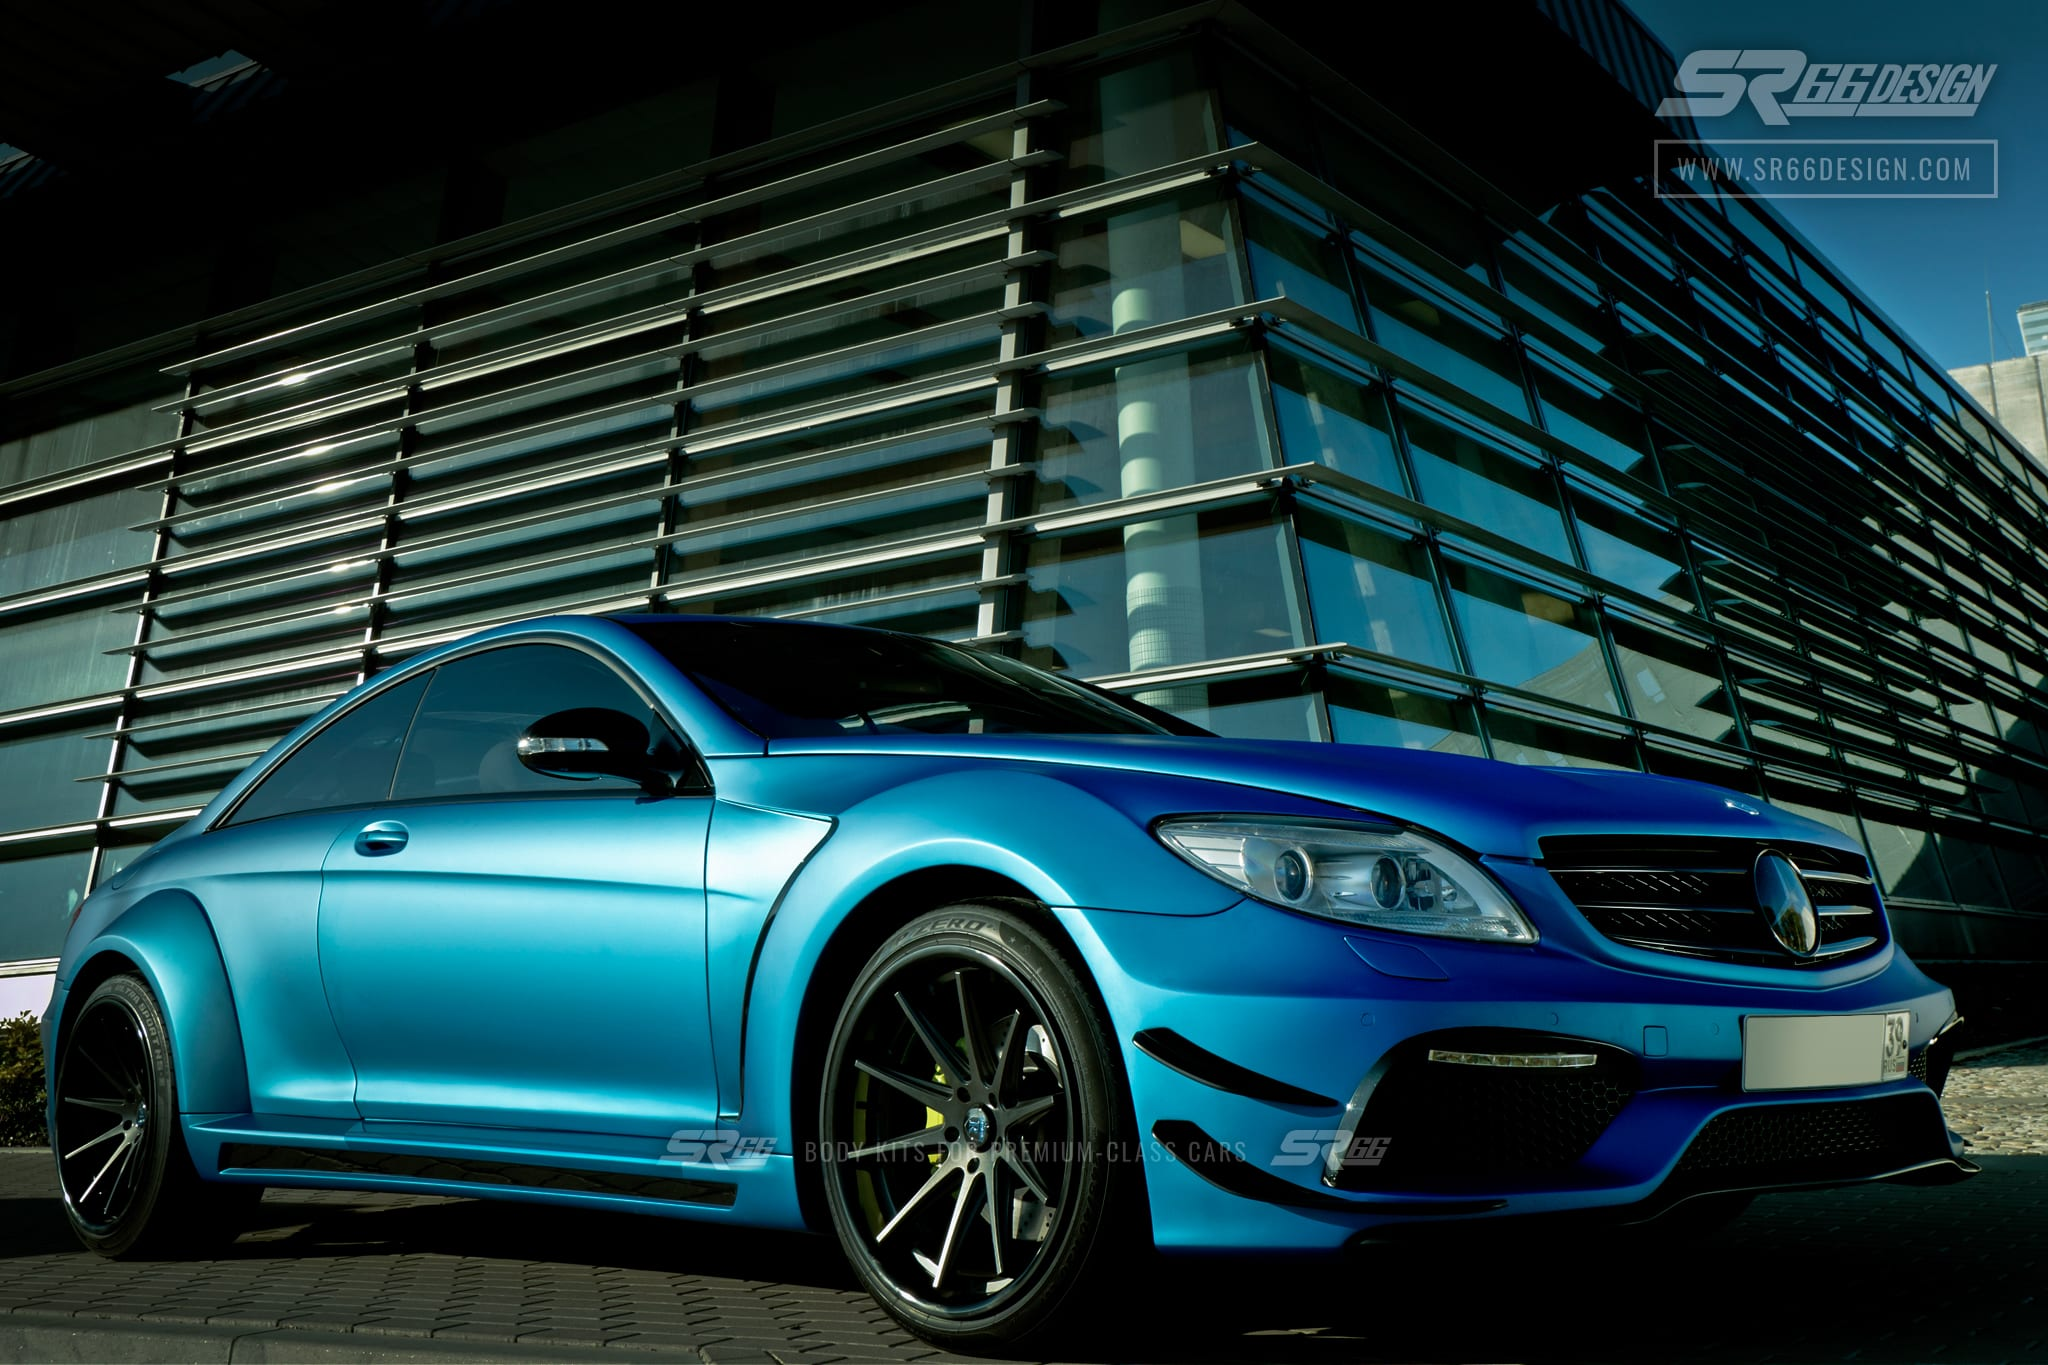 Mercedes-Benz CL C216 (W216) SR66 wide body kit